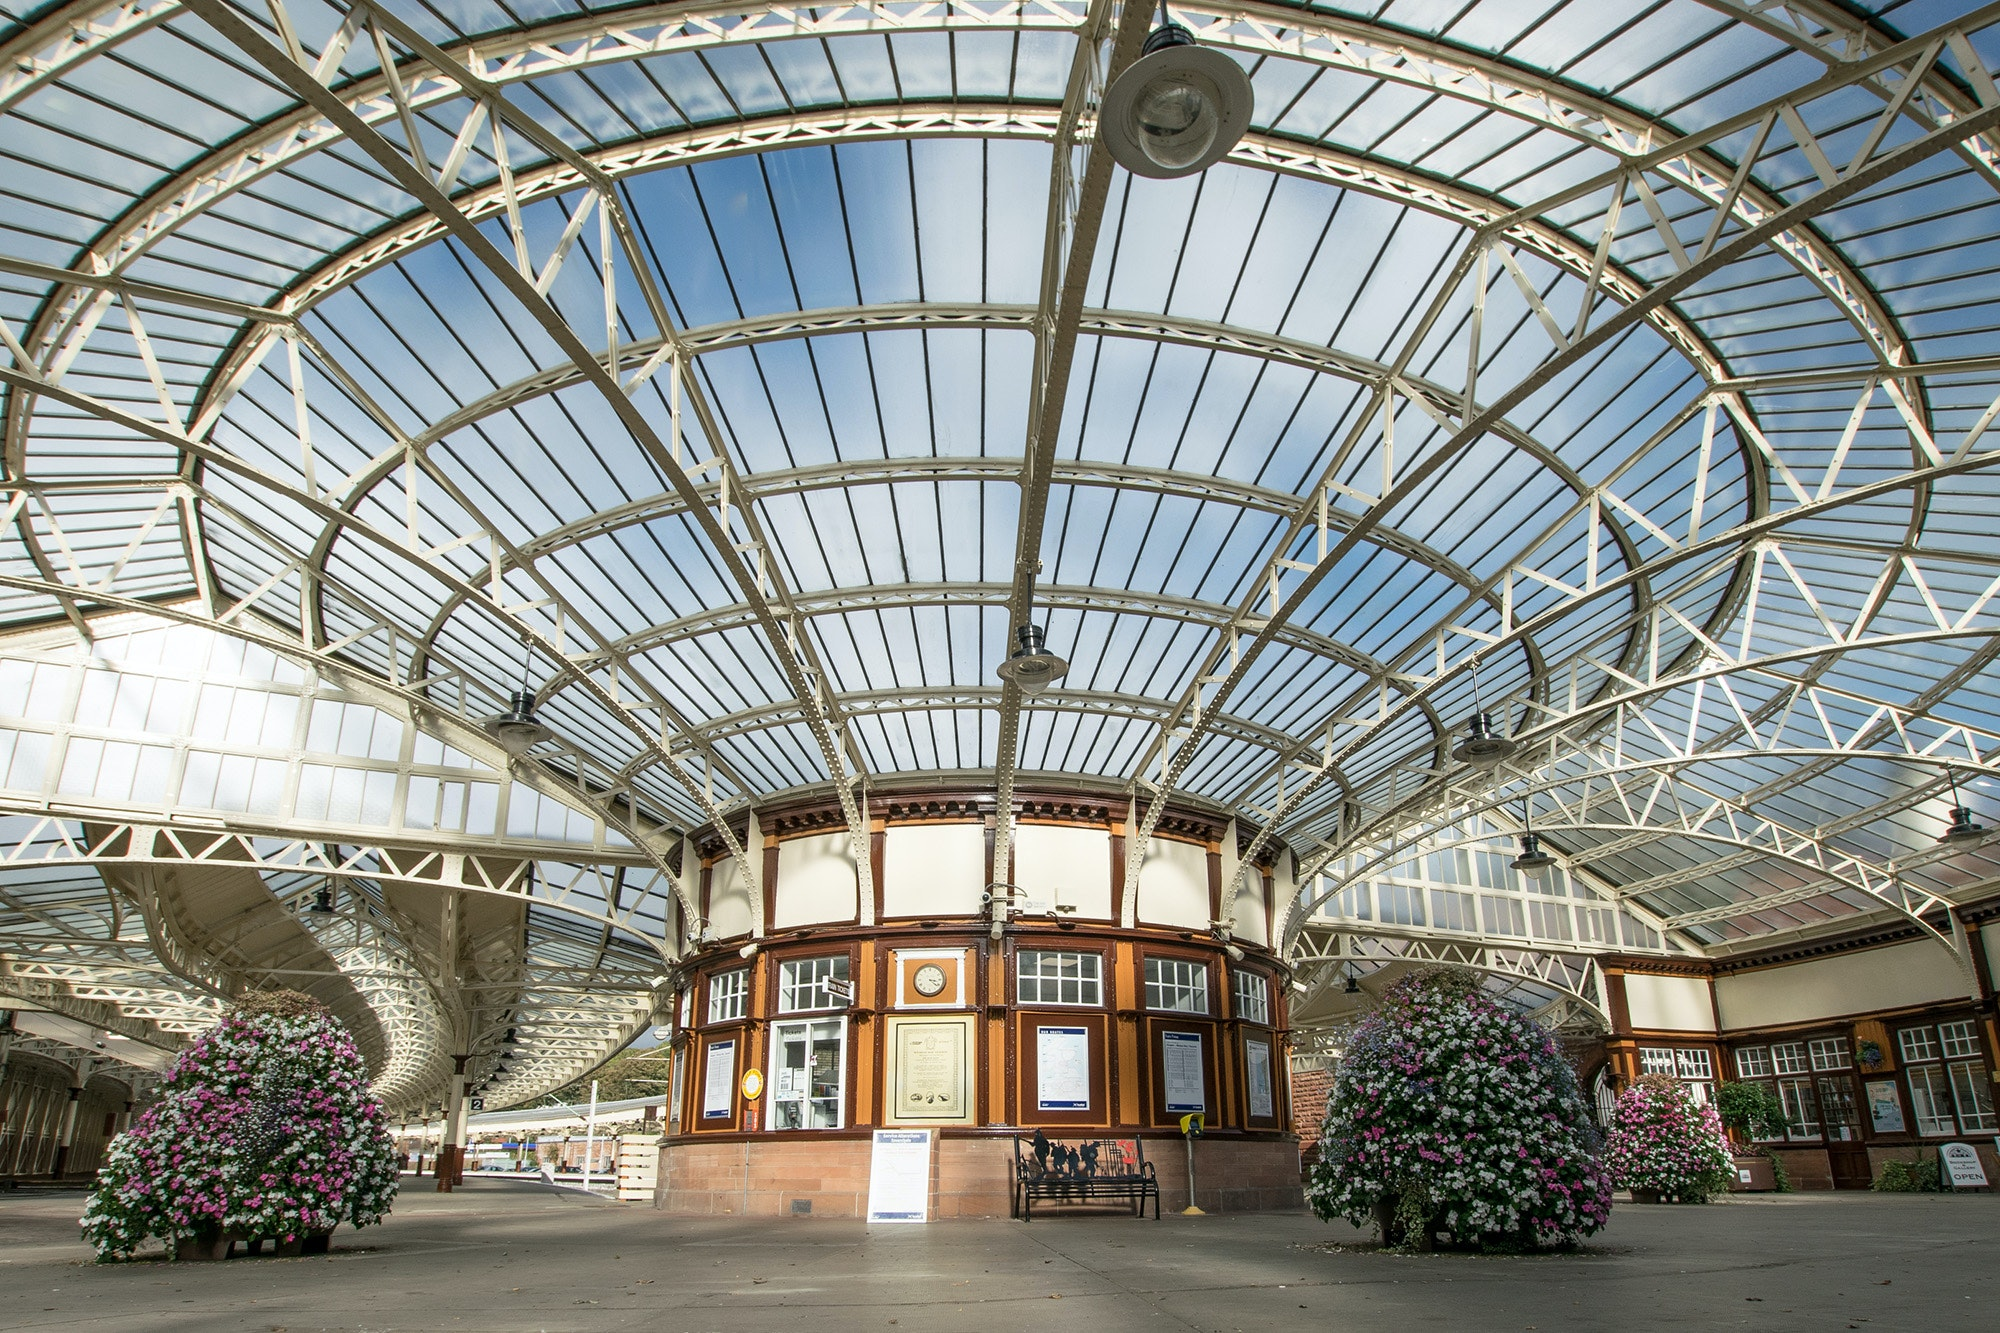 In 2009, a group of locals restored Wemyss Bay rail station to its former floral glory.